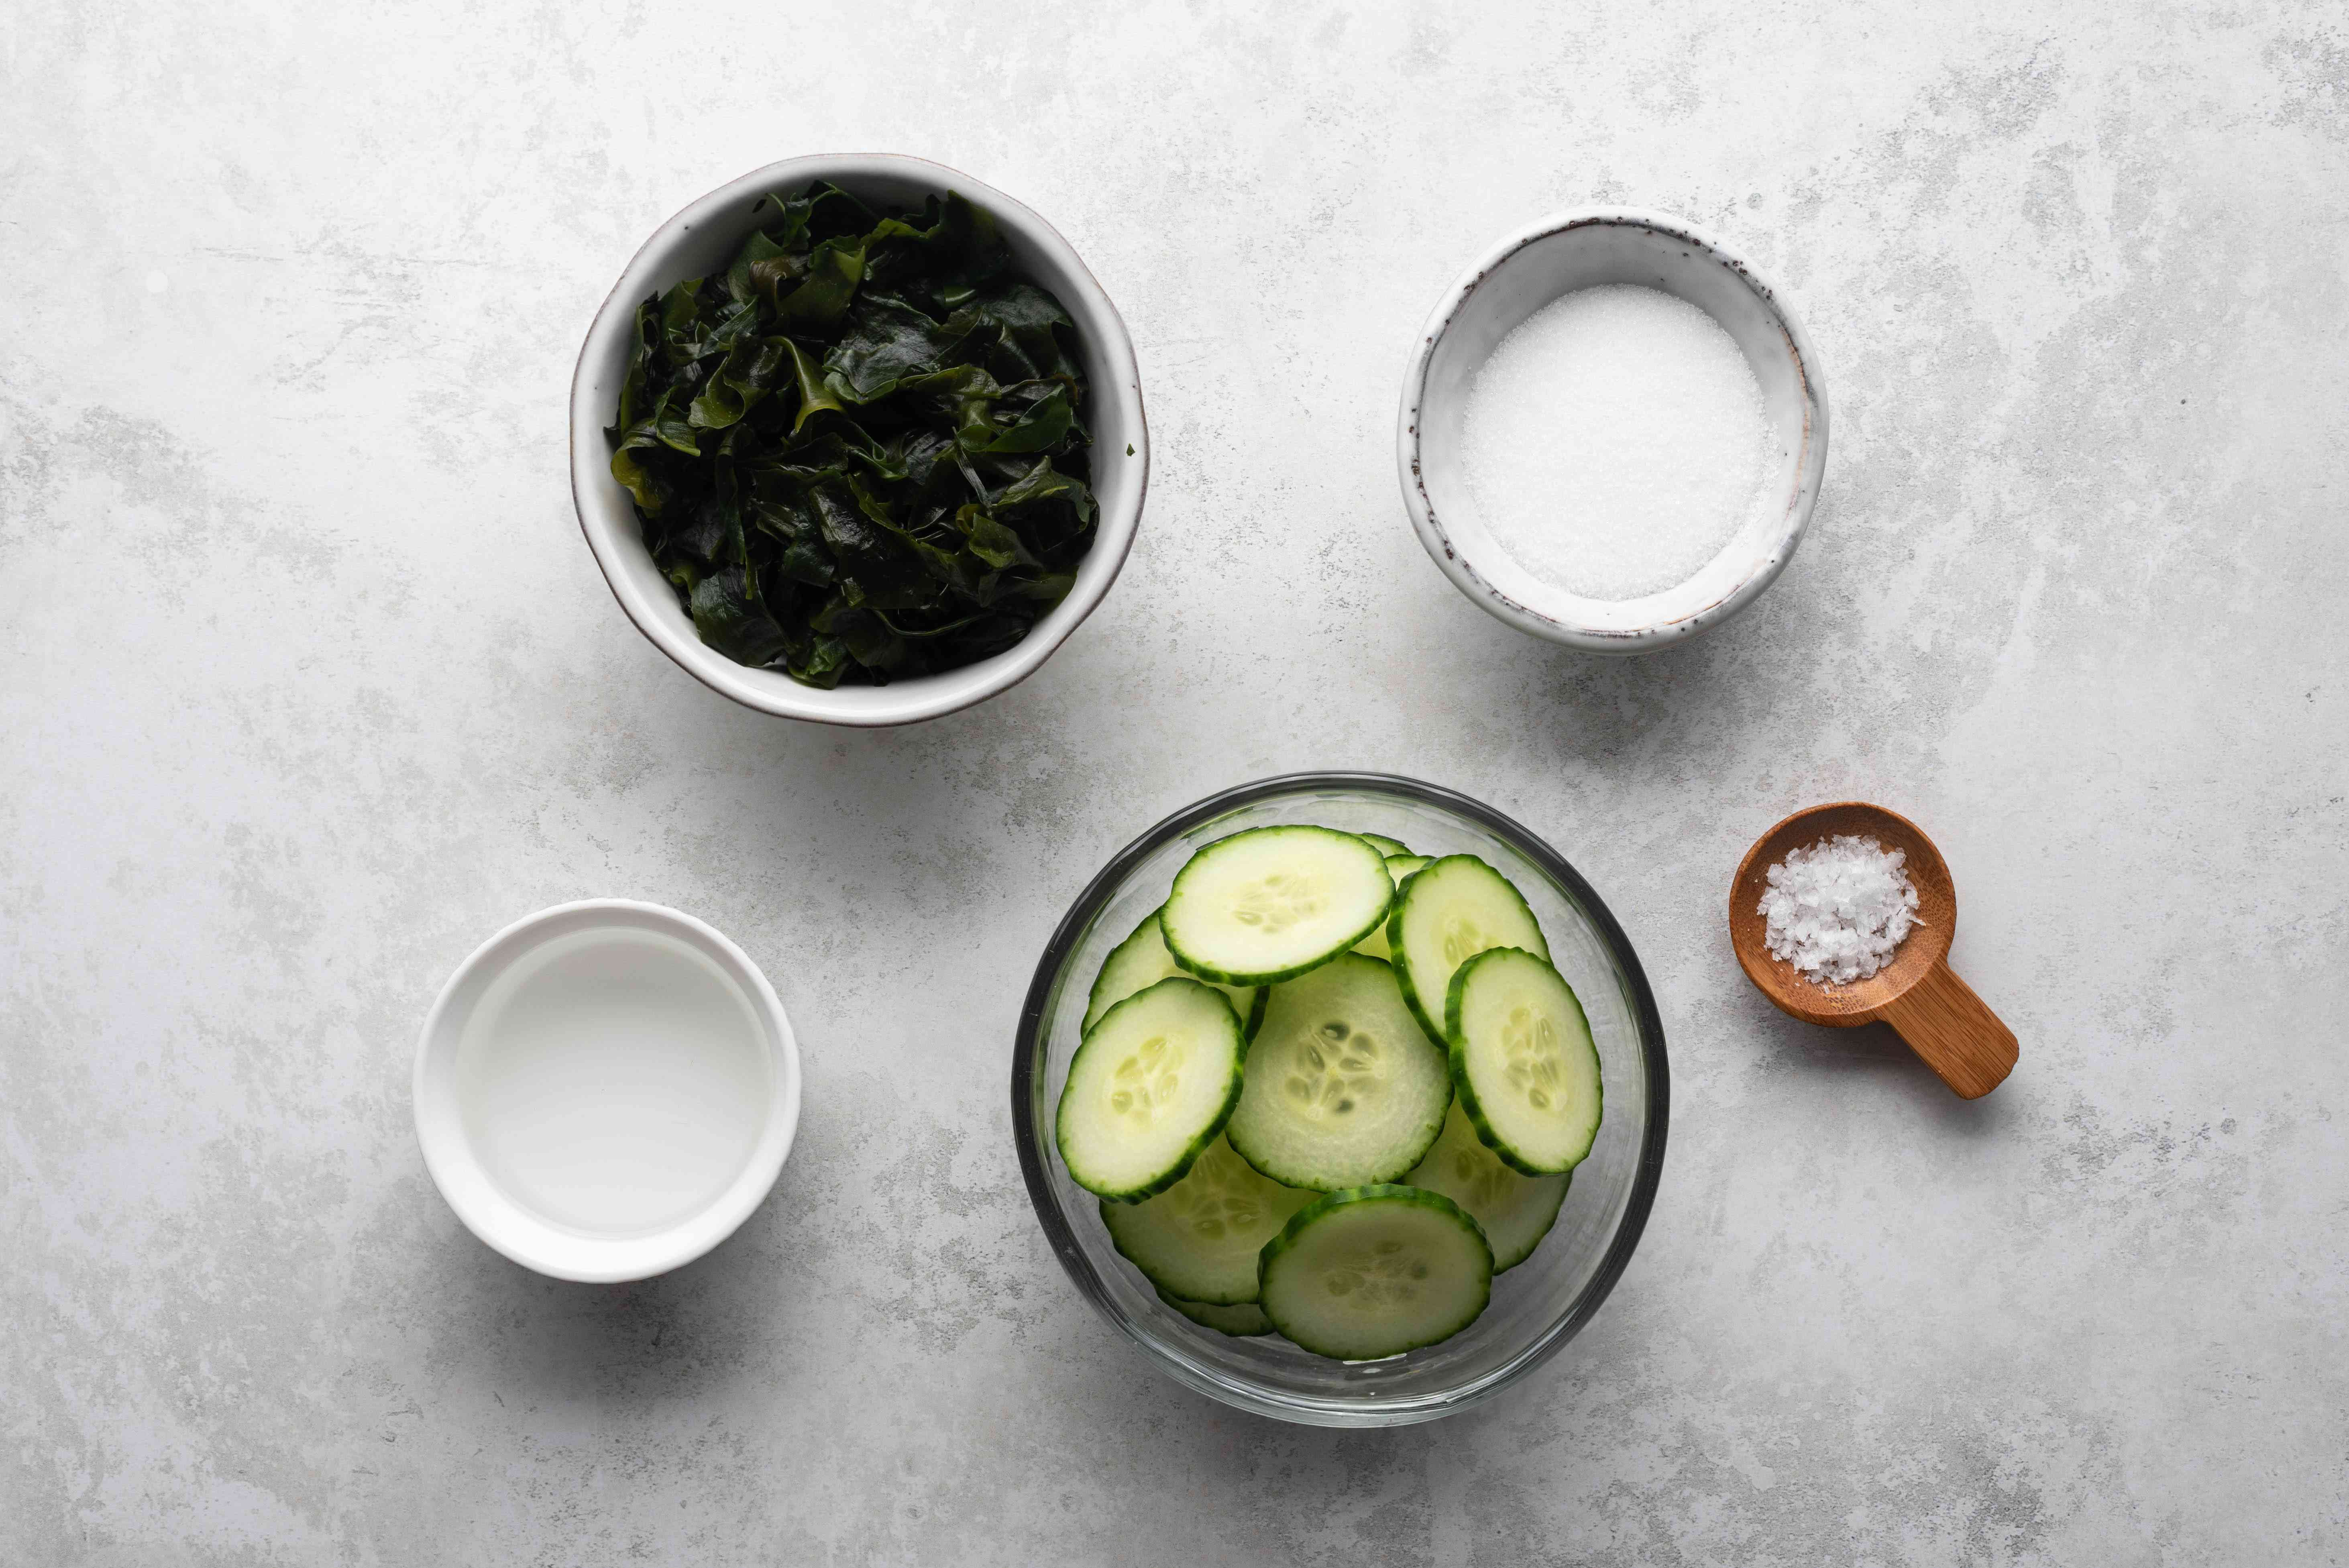 Cucumber and Wakame Salad ingredients